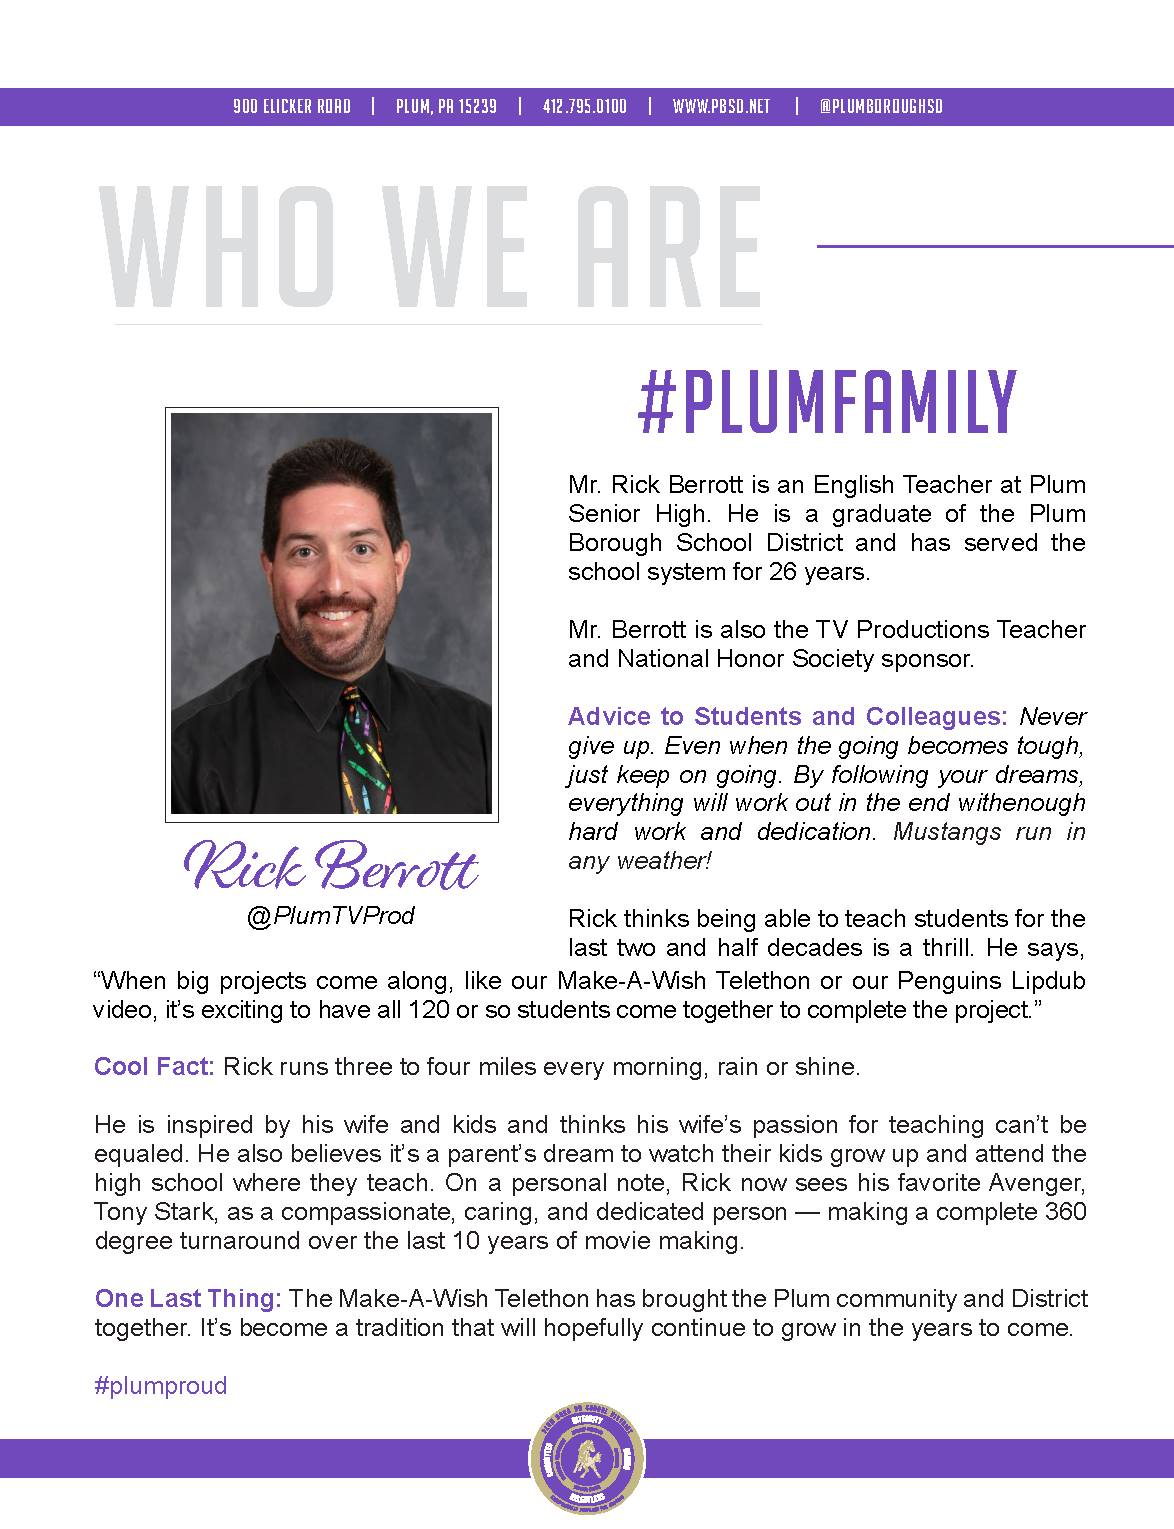 Who We Are Wednesday features Rick Berrott.